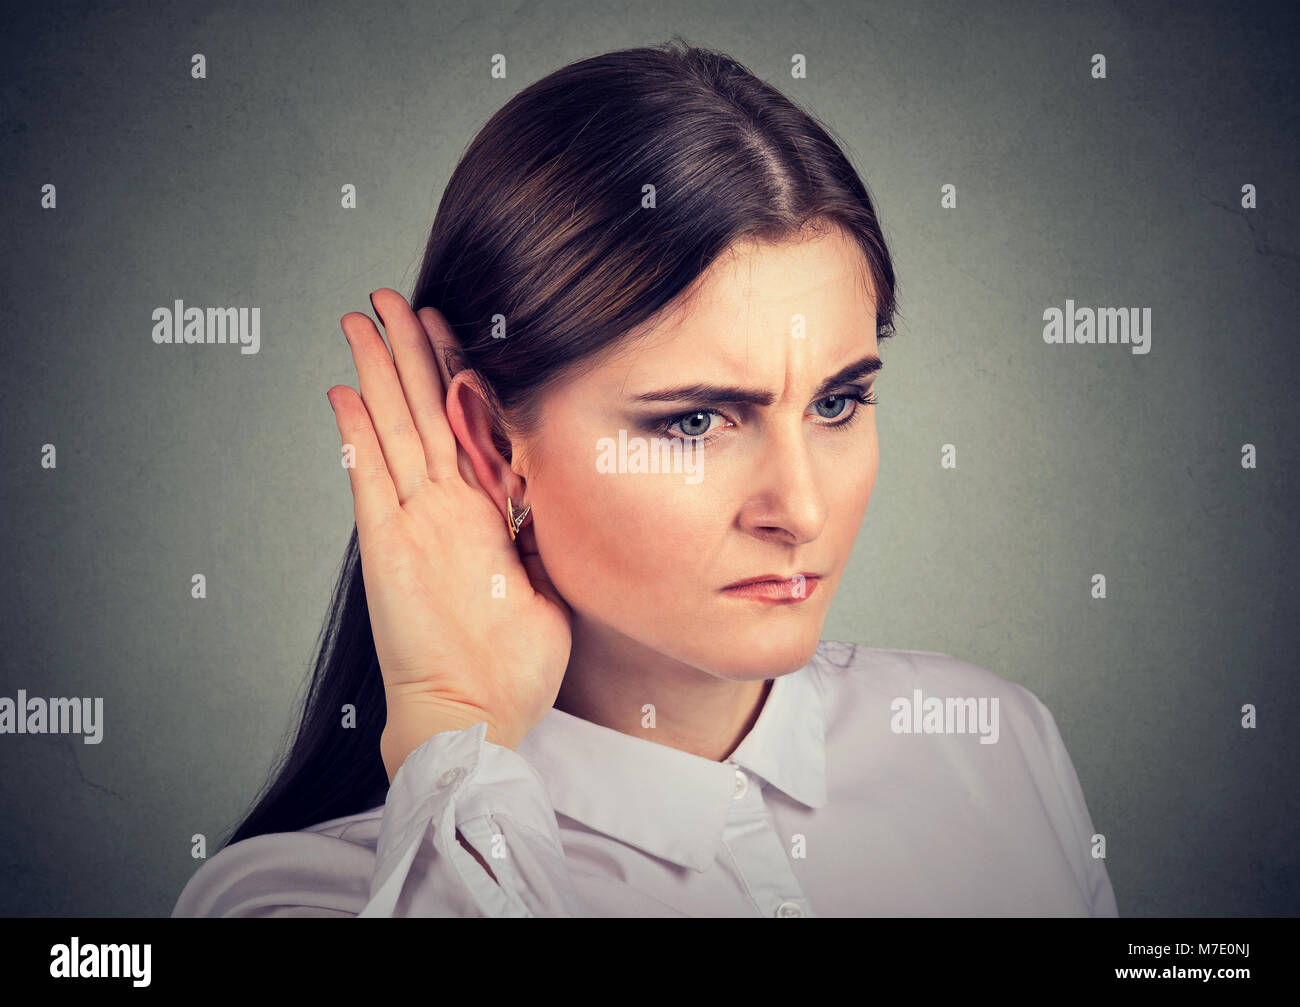 Young preoccupied girl having problems with hearing while listening to gossip. - Stock Image